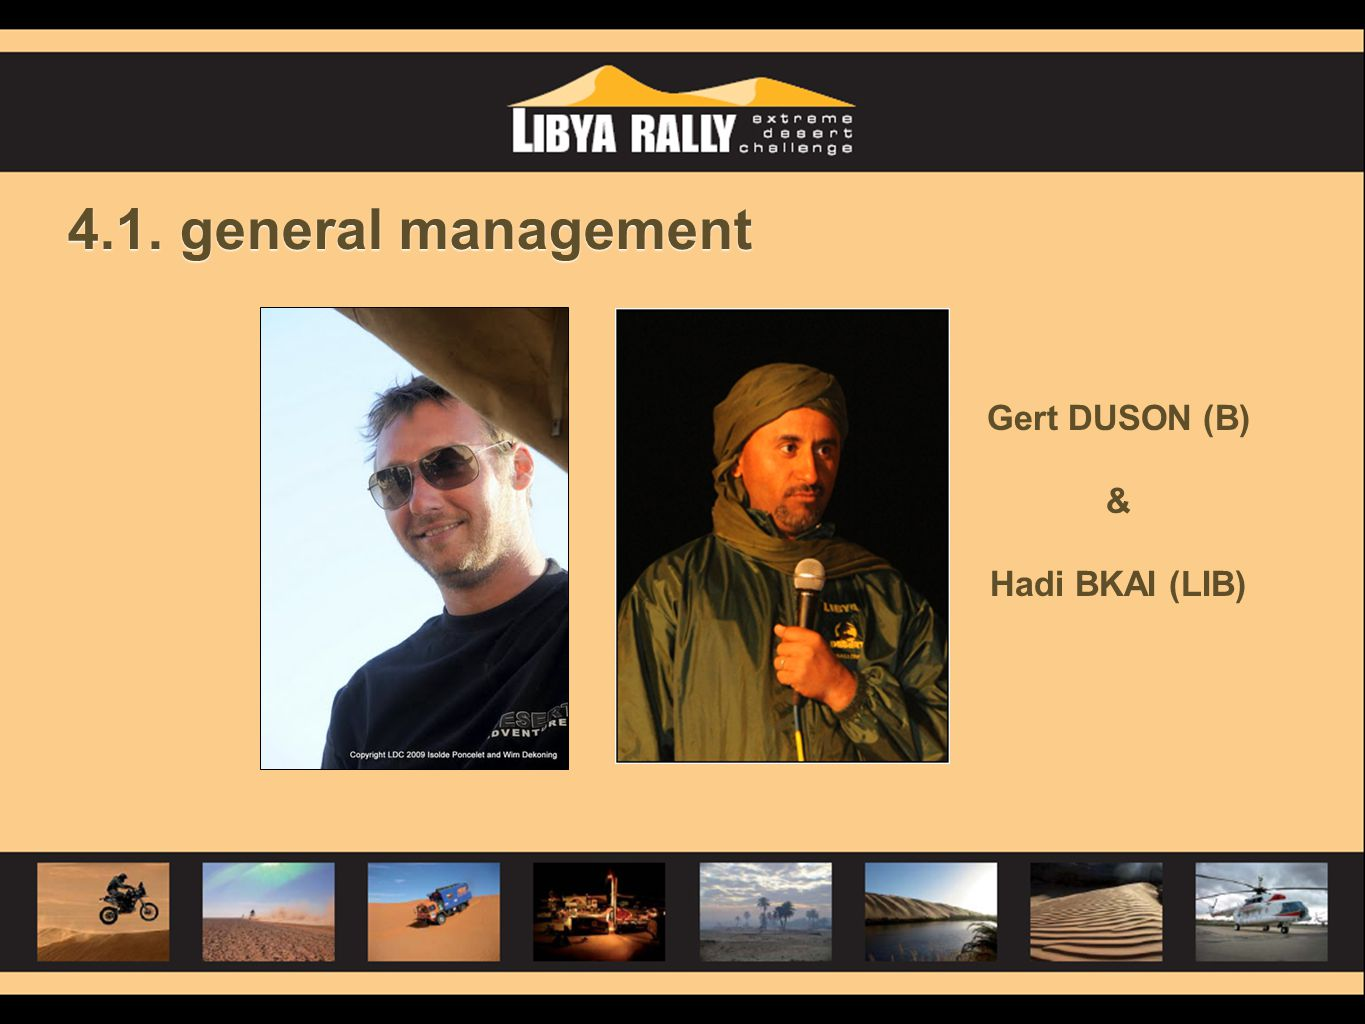 4.1. general management Gert DUSON (B) & Hadi BKAI (LIB)